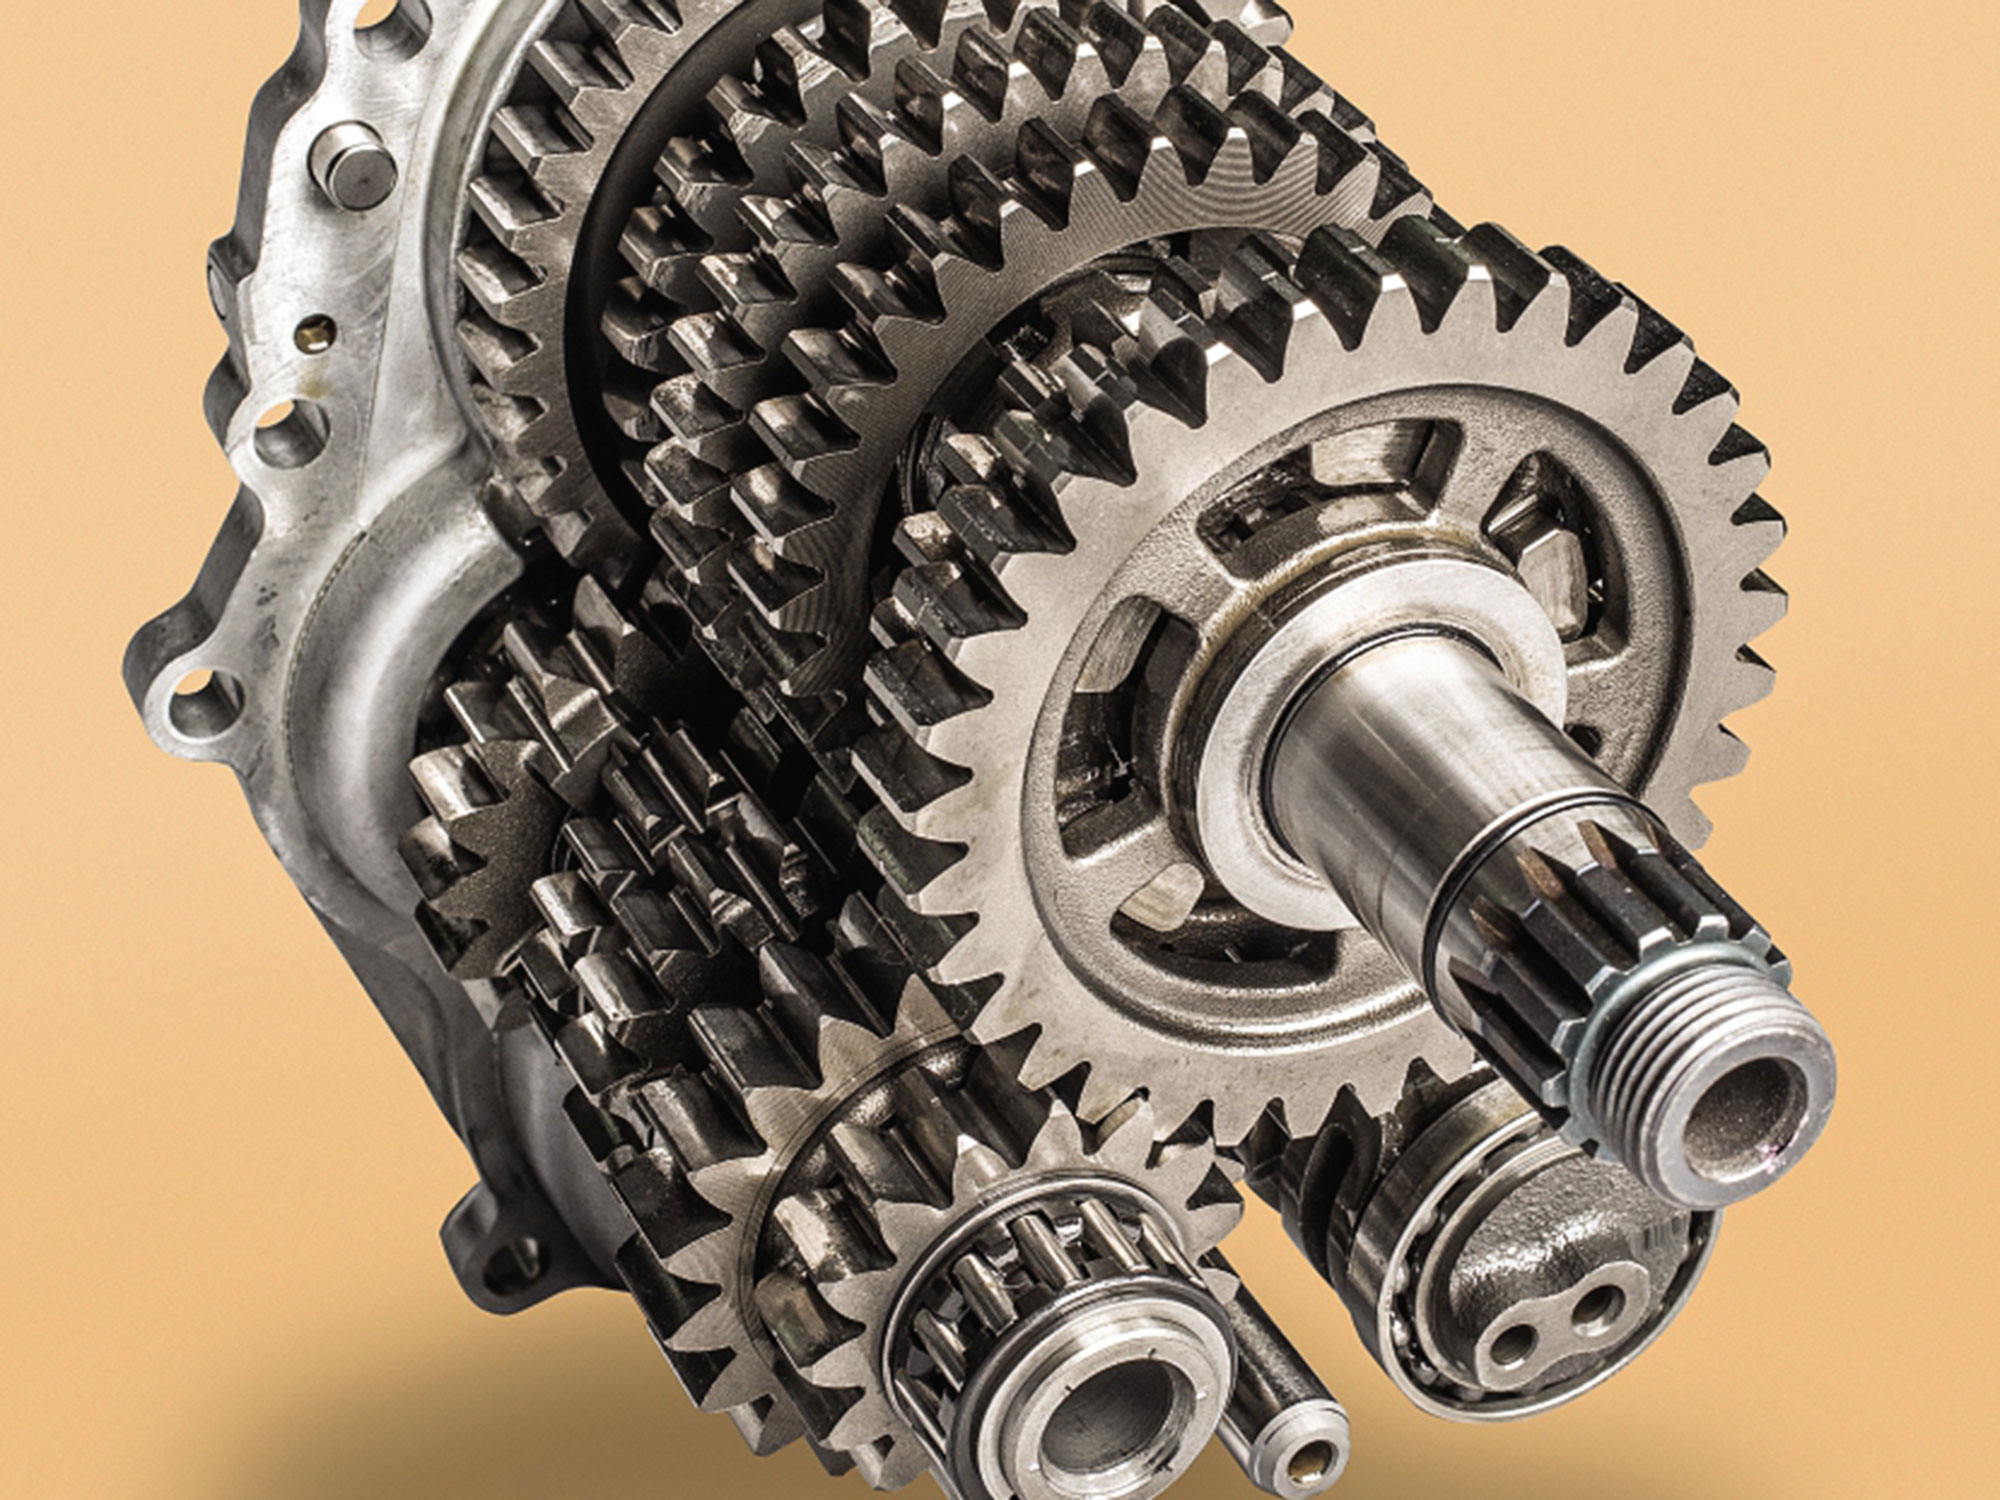 History Of The Motorcycle Transmission   Cycle World   Gear Box Of Motorcycle      Cycle World